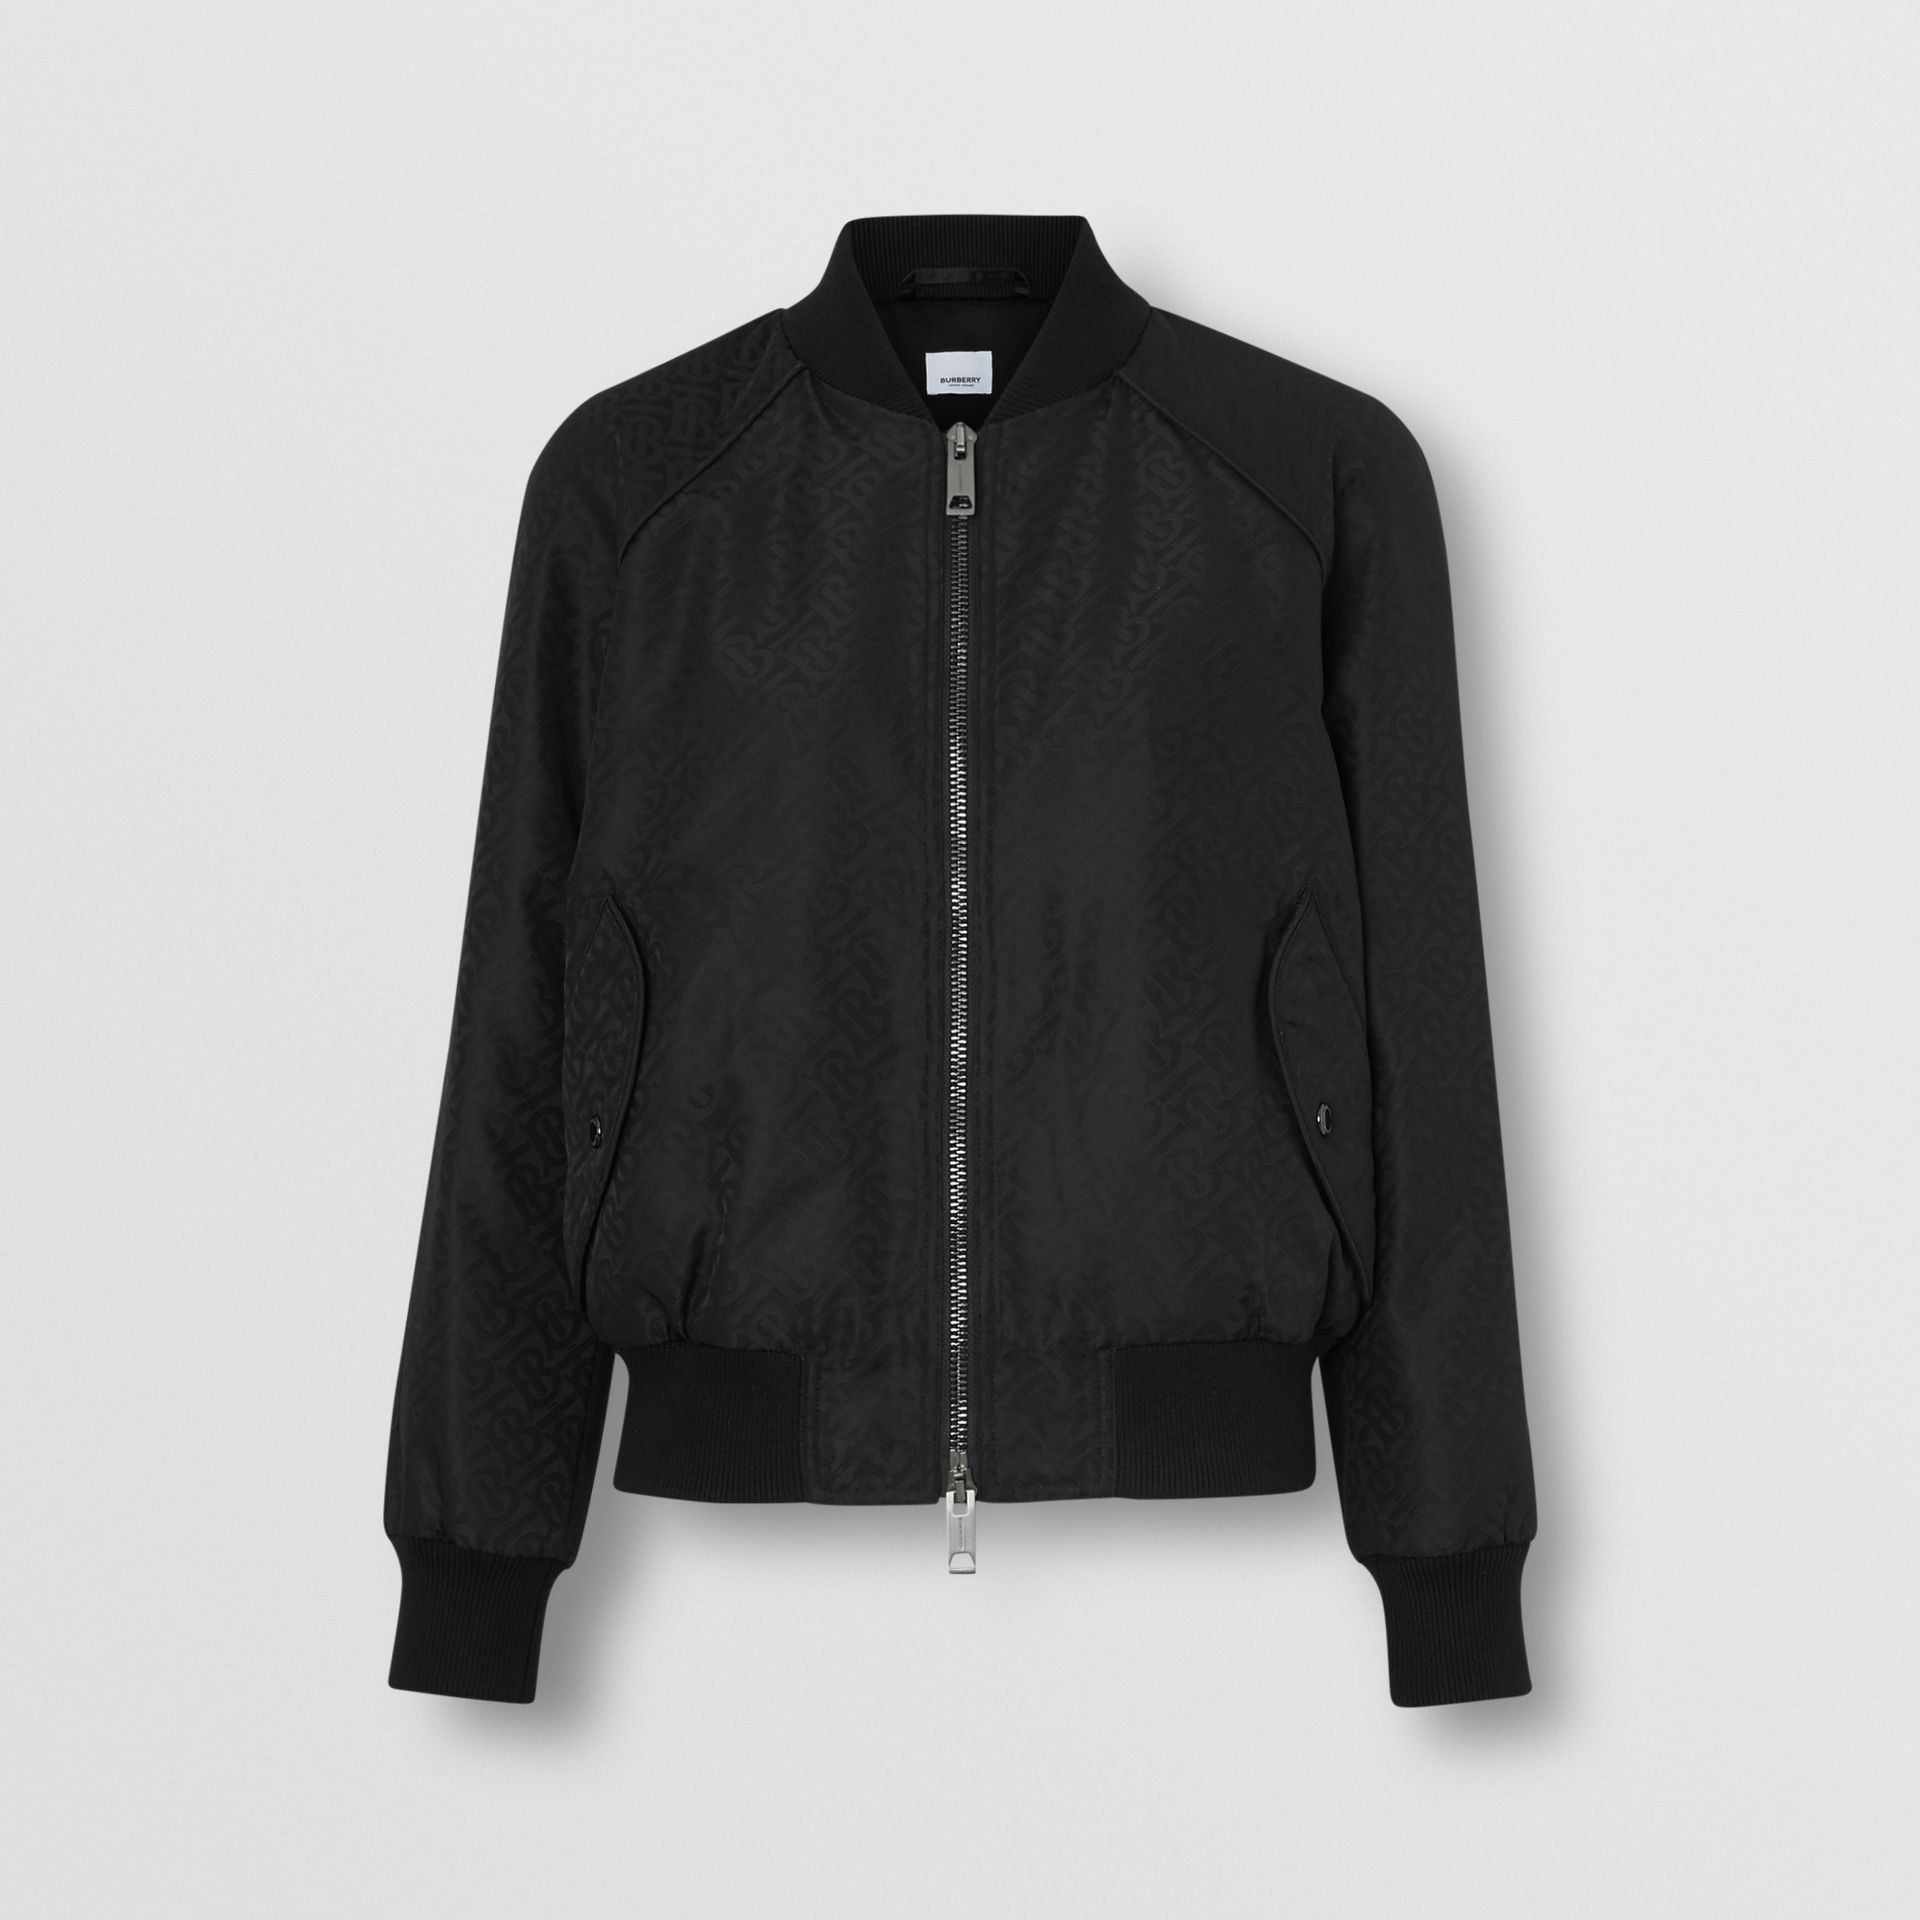 Monogram ECONYL® Jacquard Bomber Jacket in Black - Women | Burberry - gallery image 3